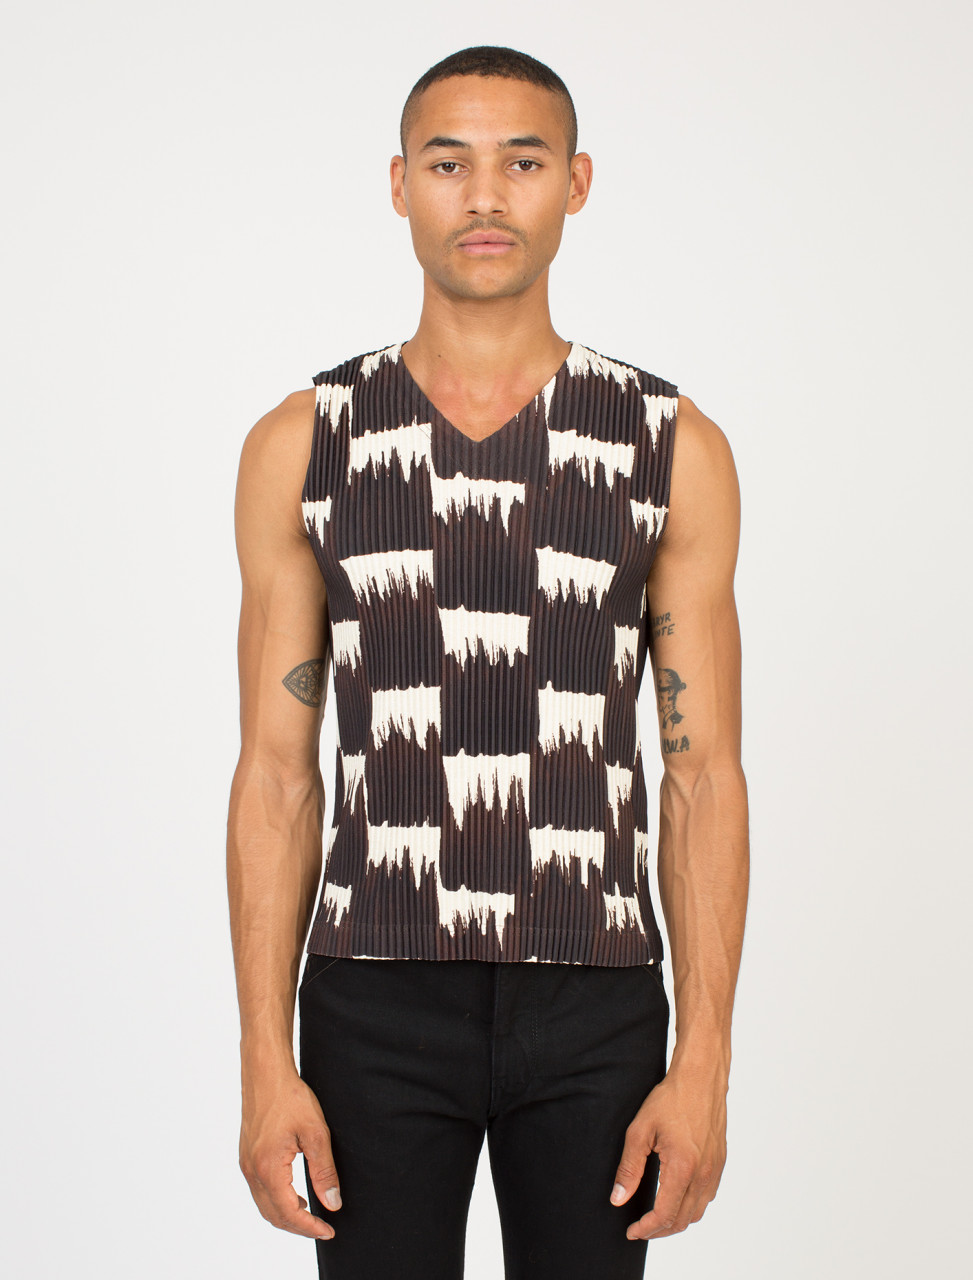 Pleated Patterned Vest